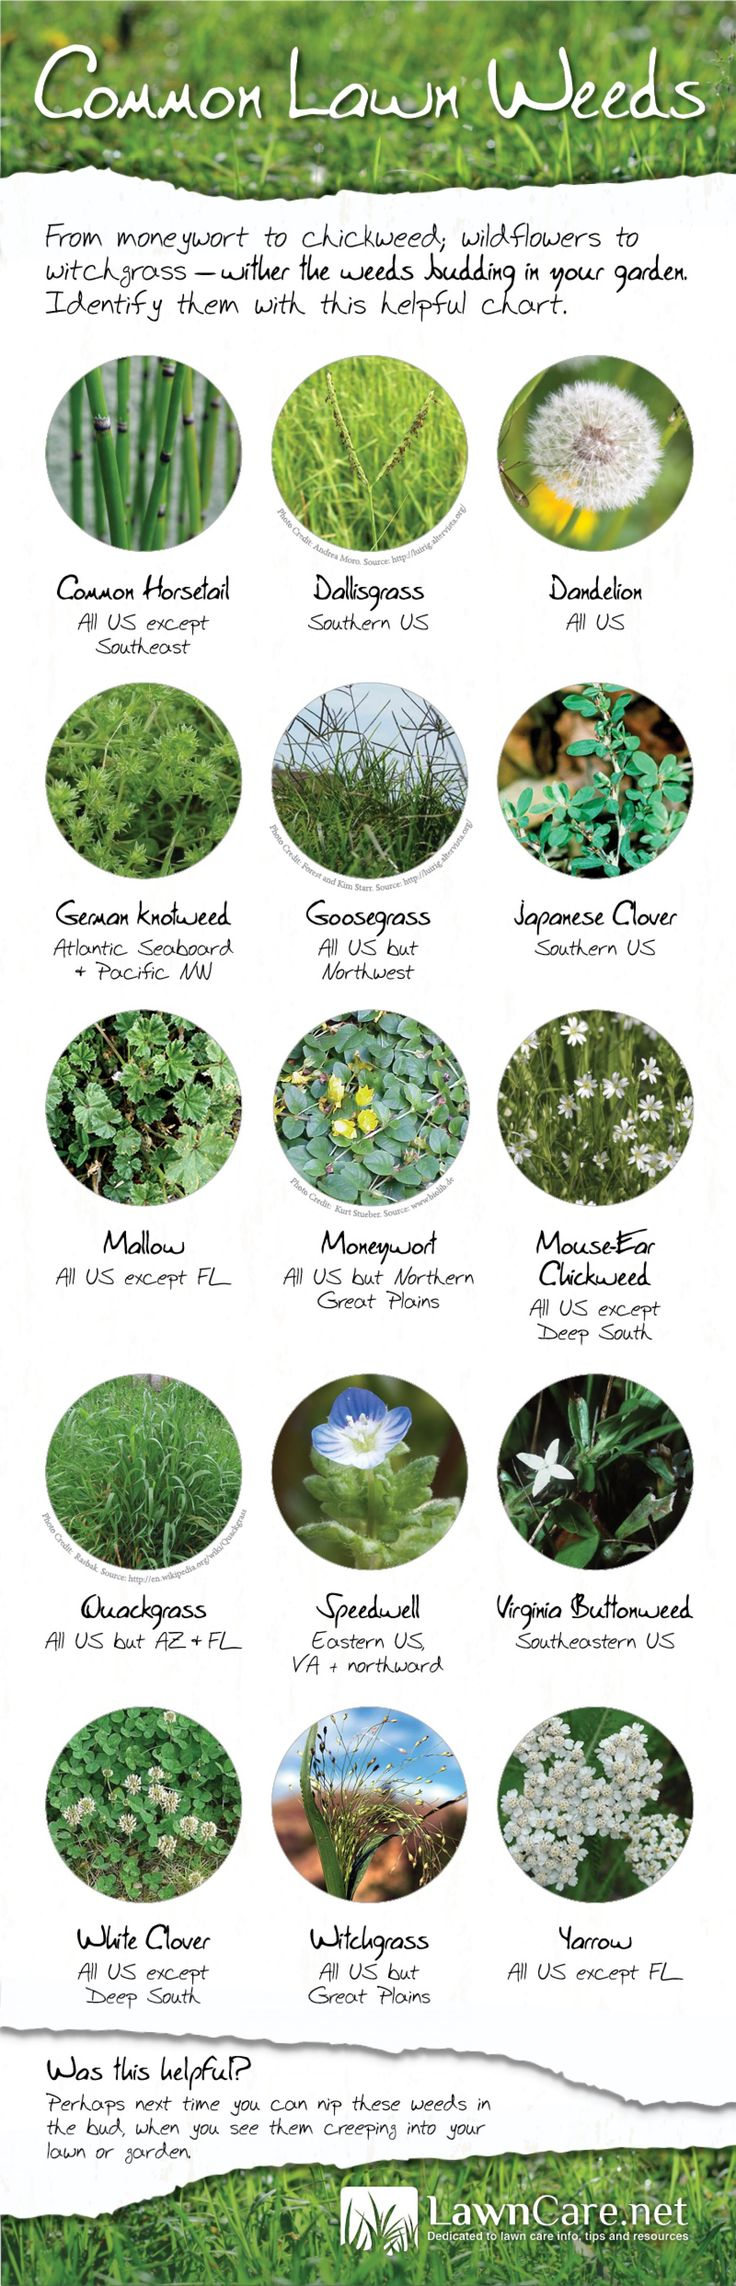 Common Lawn Weeds | Visual.ly